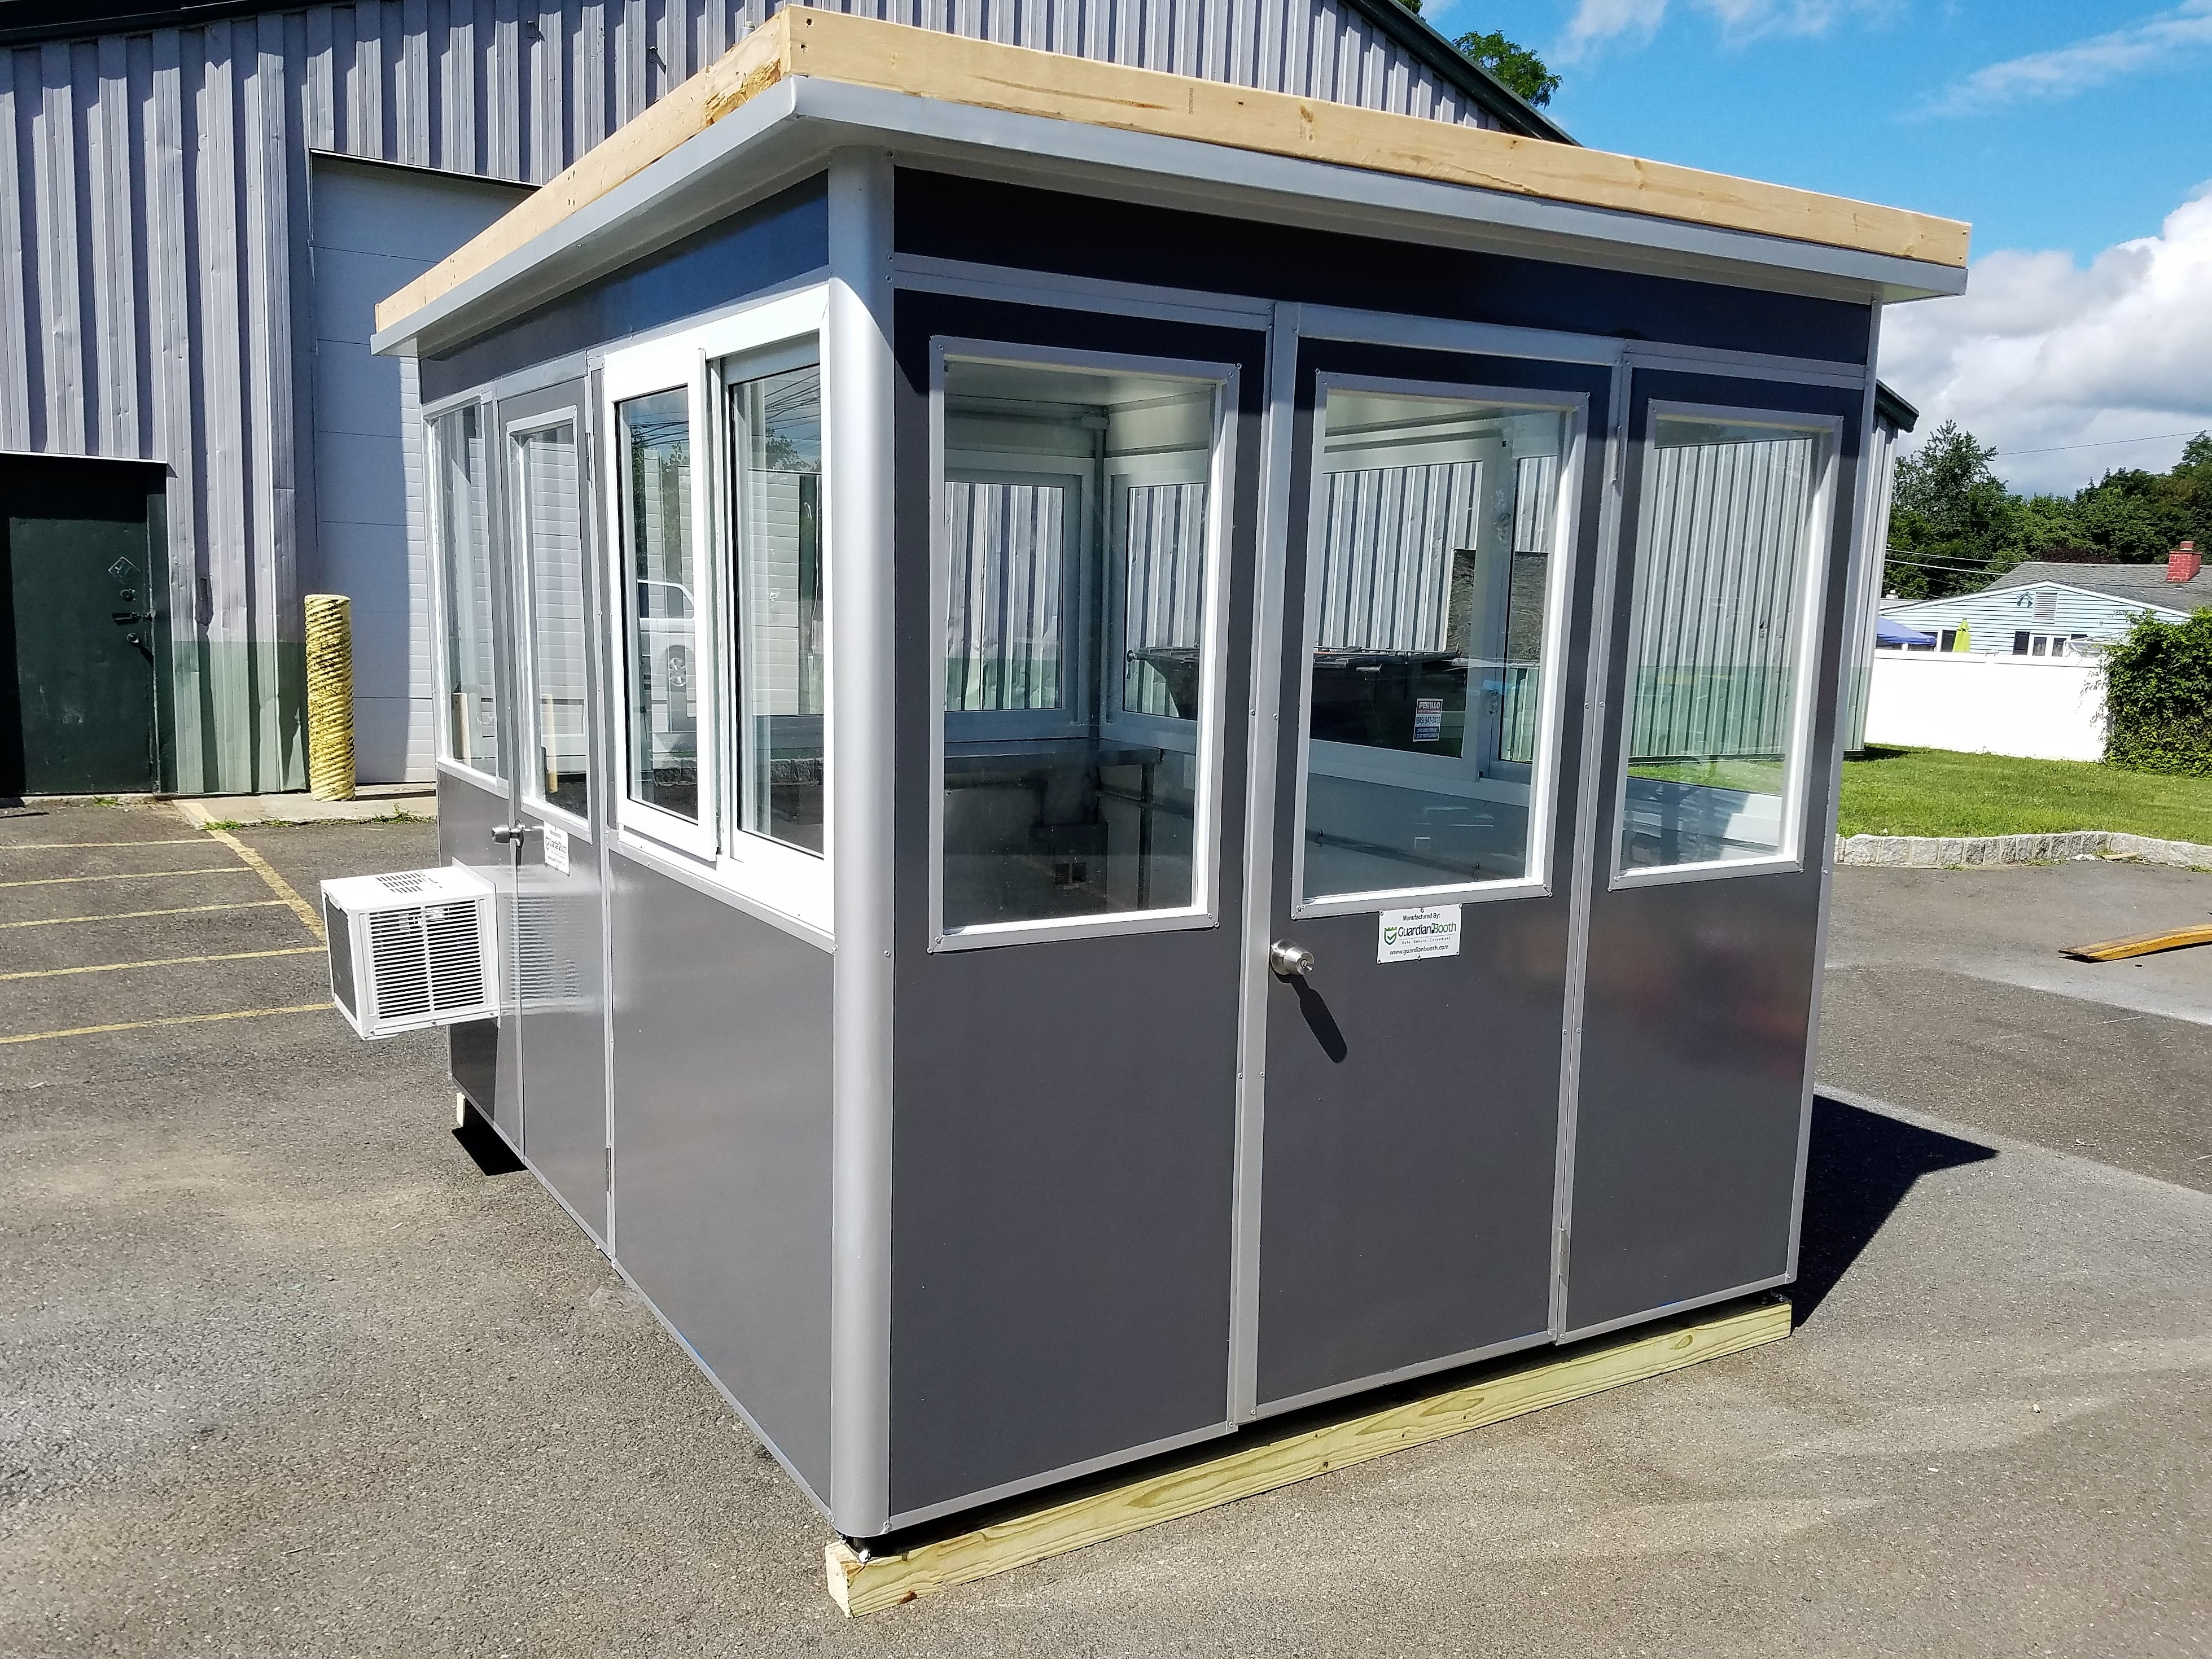 8x10 Airport  Security Booth in Charlotte, NC with Custom Exterior Color, Sliding Windows, Extra Outlets